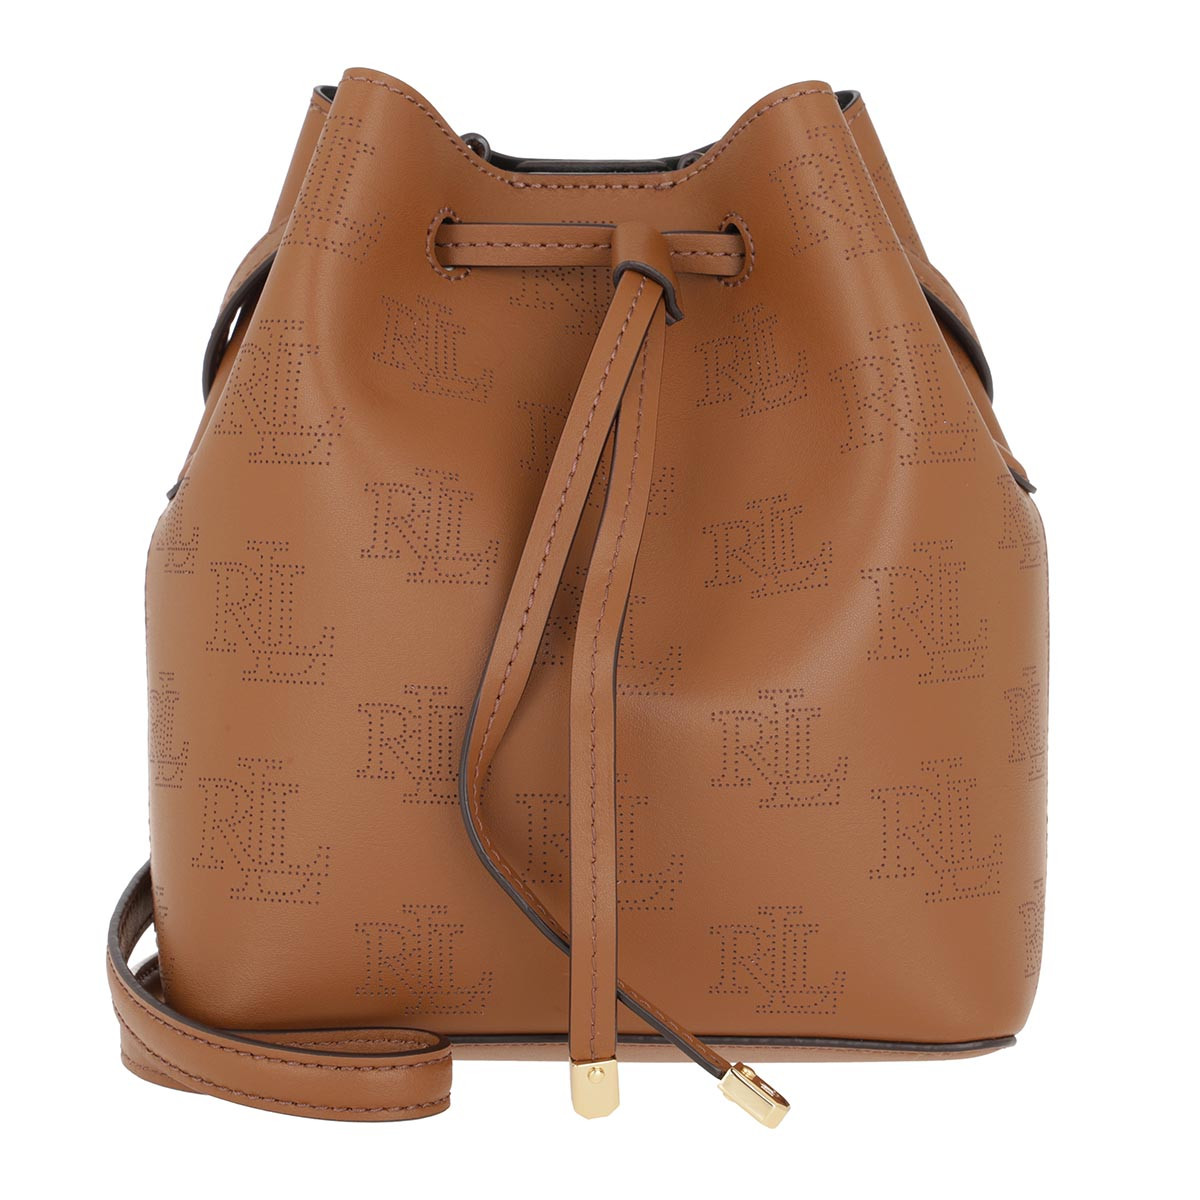 Lauren Ralph Lauren Beuteltasche - Debby Drawstring Mini Field Brown Black - in braun - für Damen